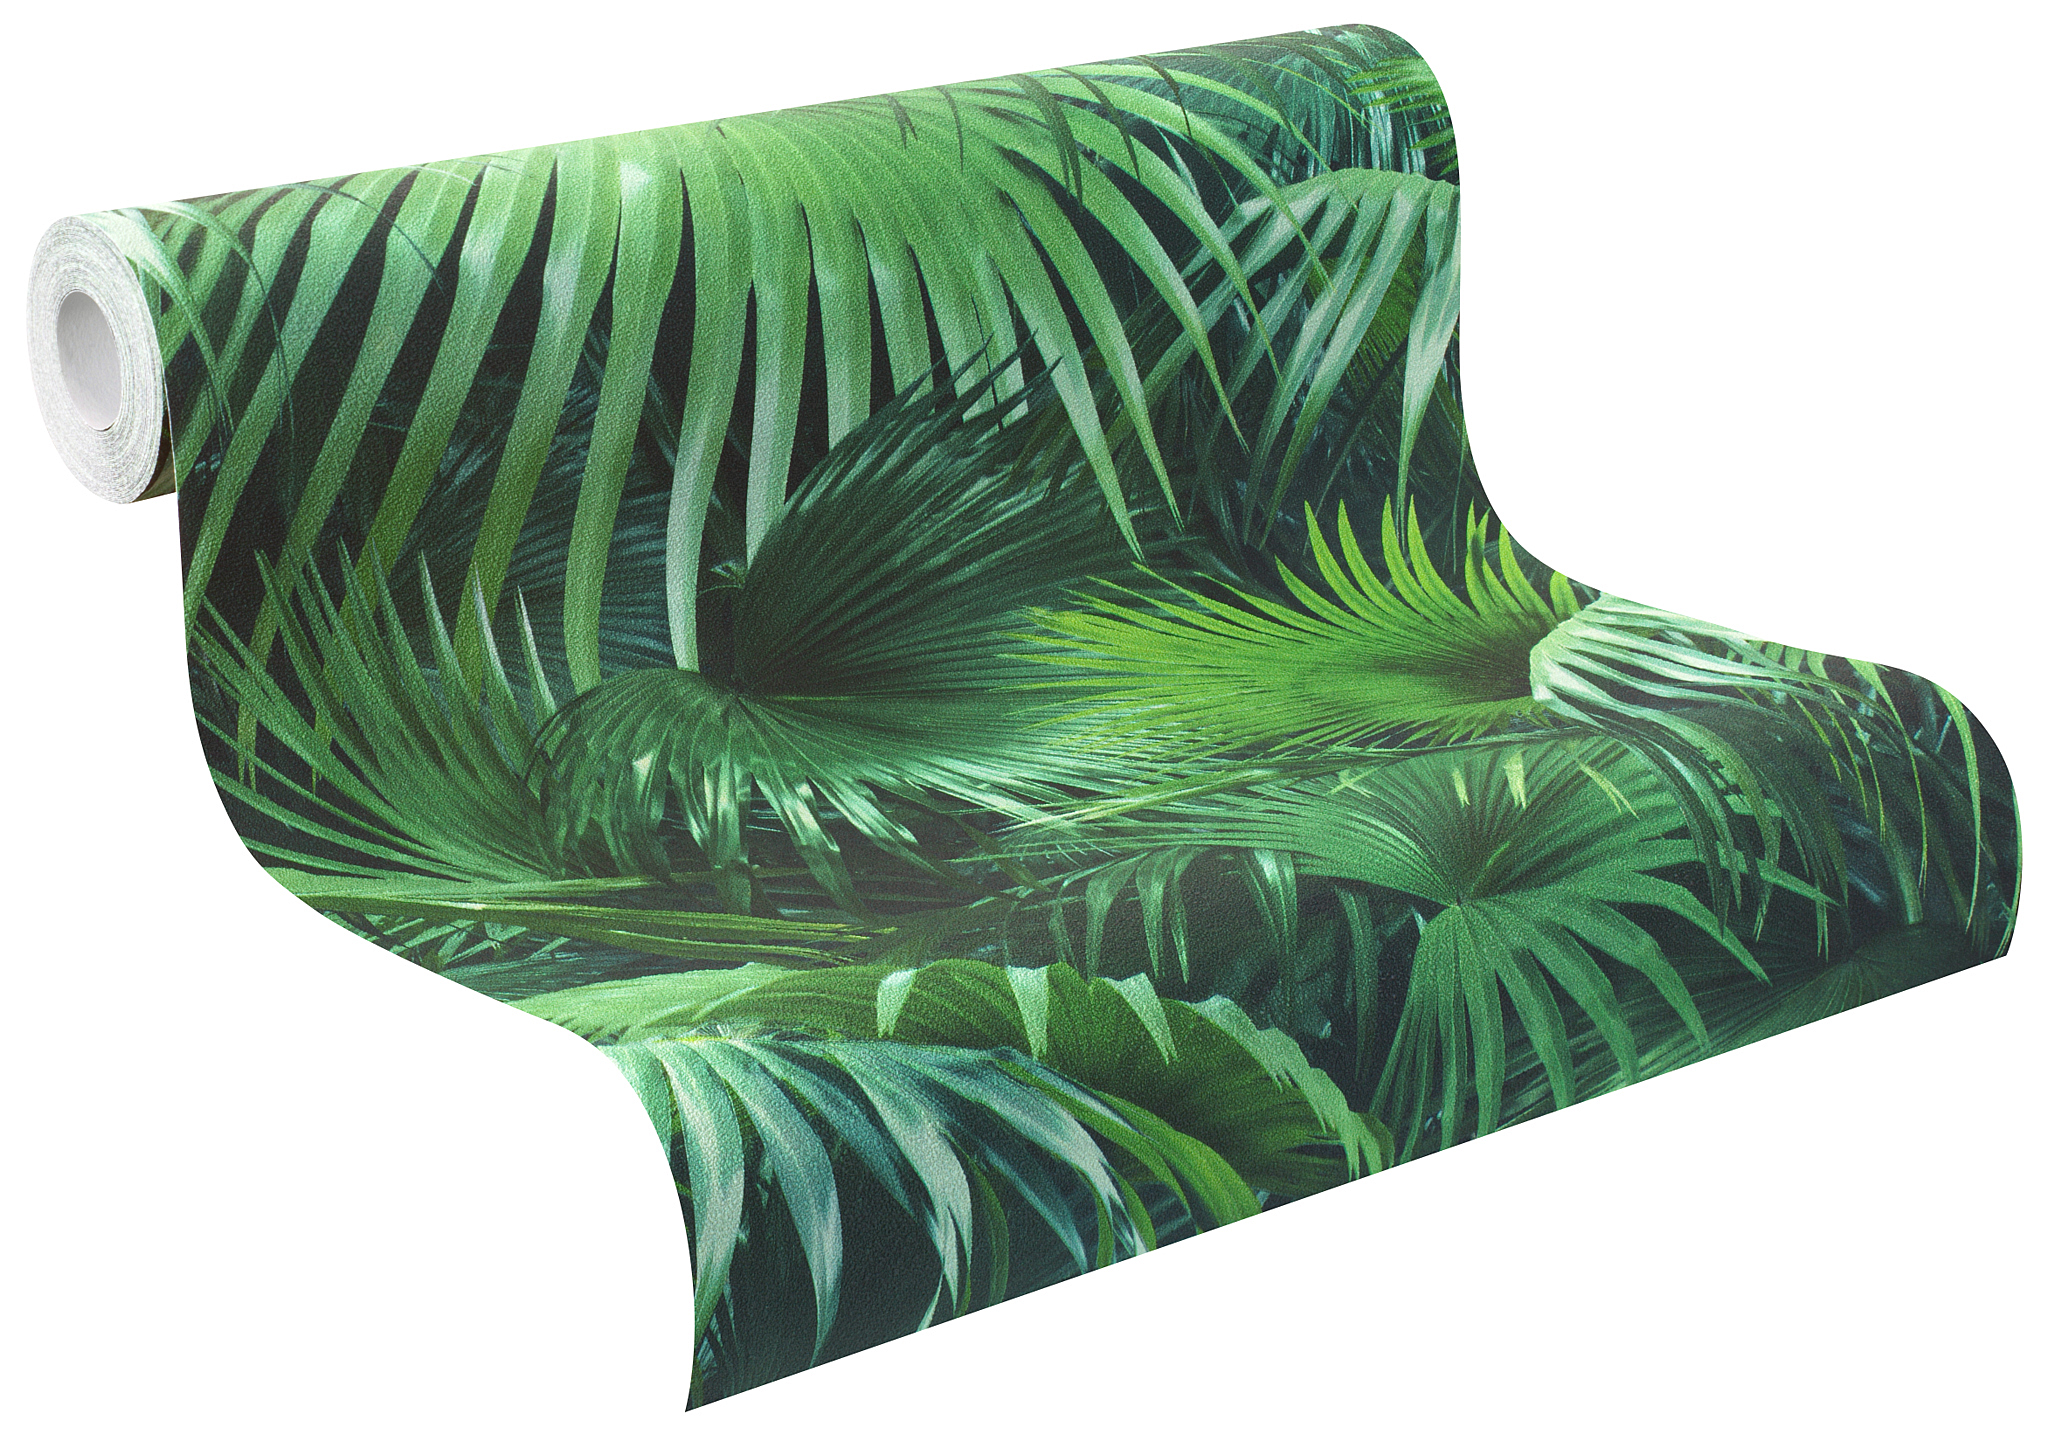 Rasch tapete crispy paper 524901 palm trees jungle plant for Fleece tapete